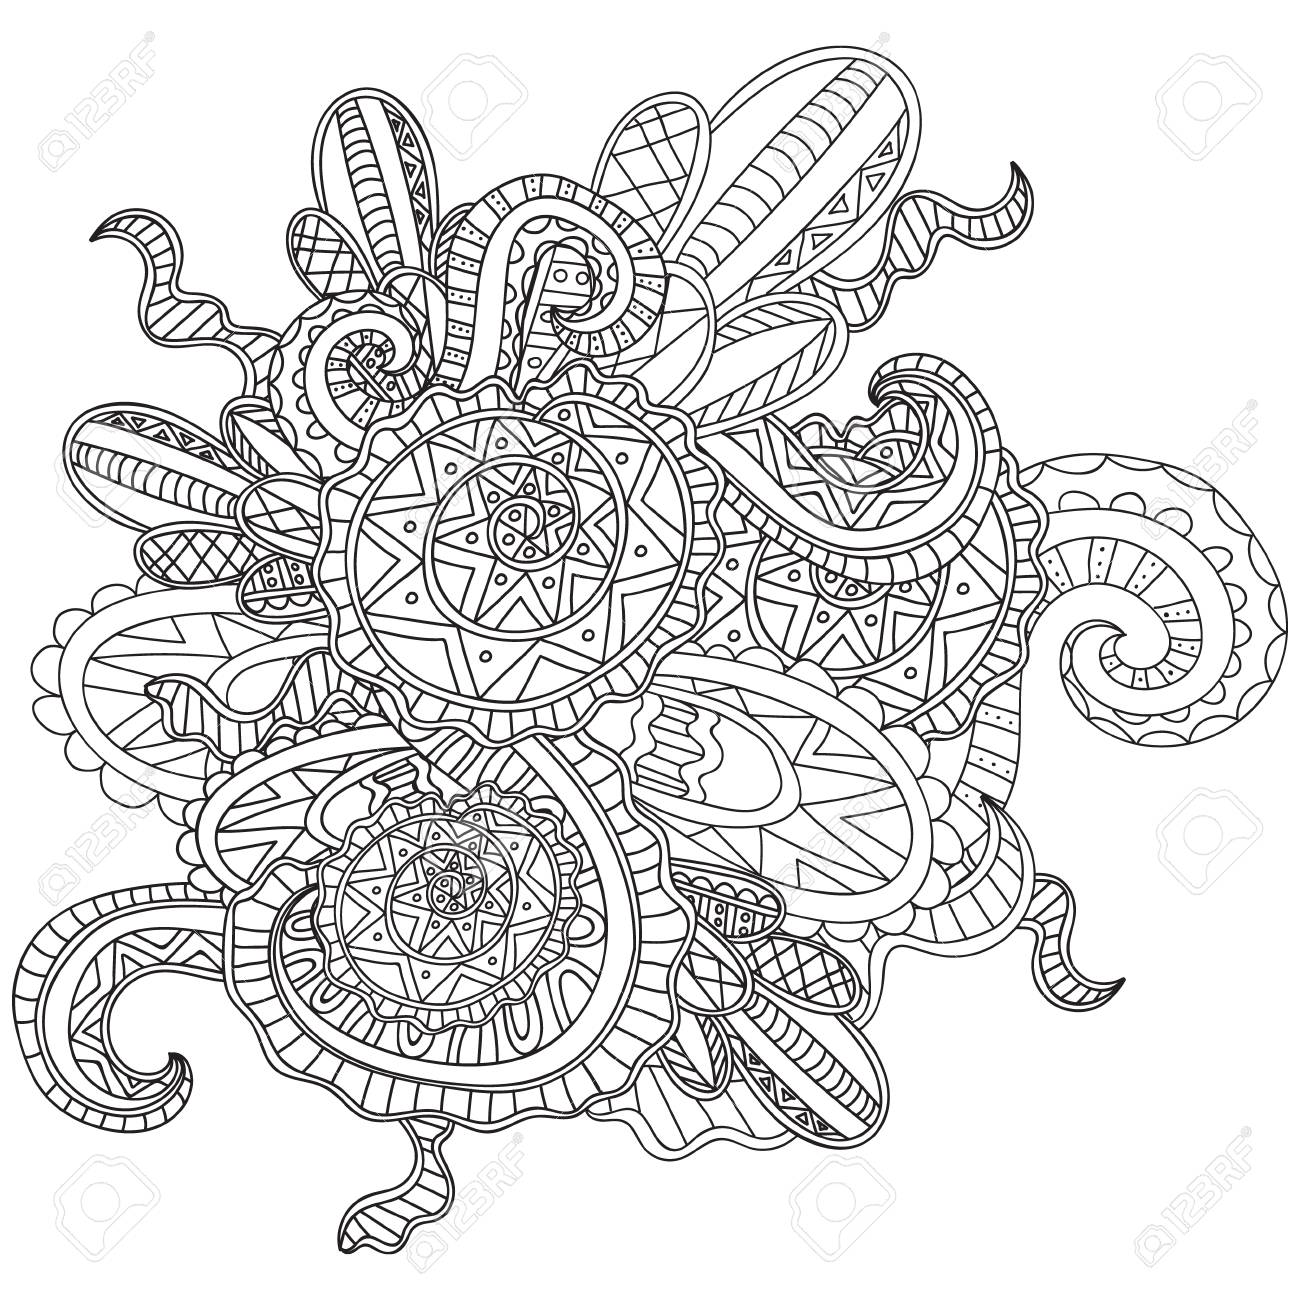 9d8c368aac258 Coloring Pages For Adults Coloring Book Decorative Hand Drawn